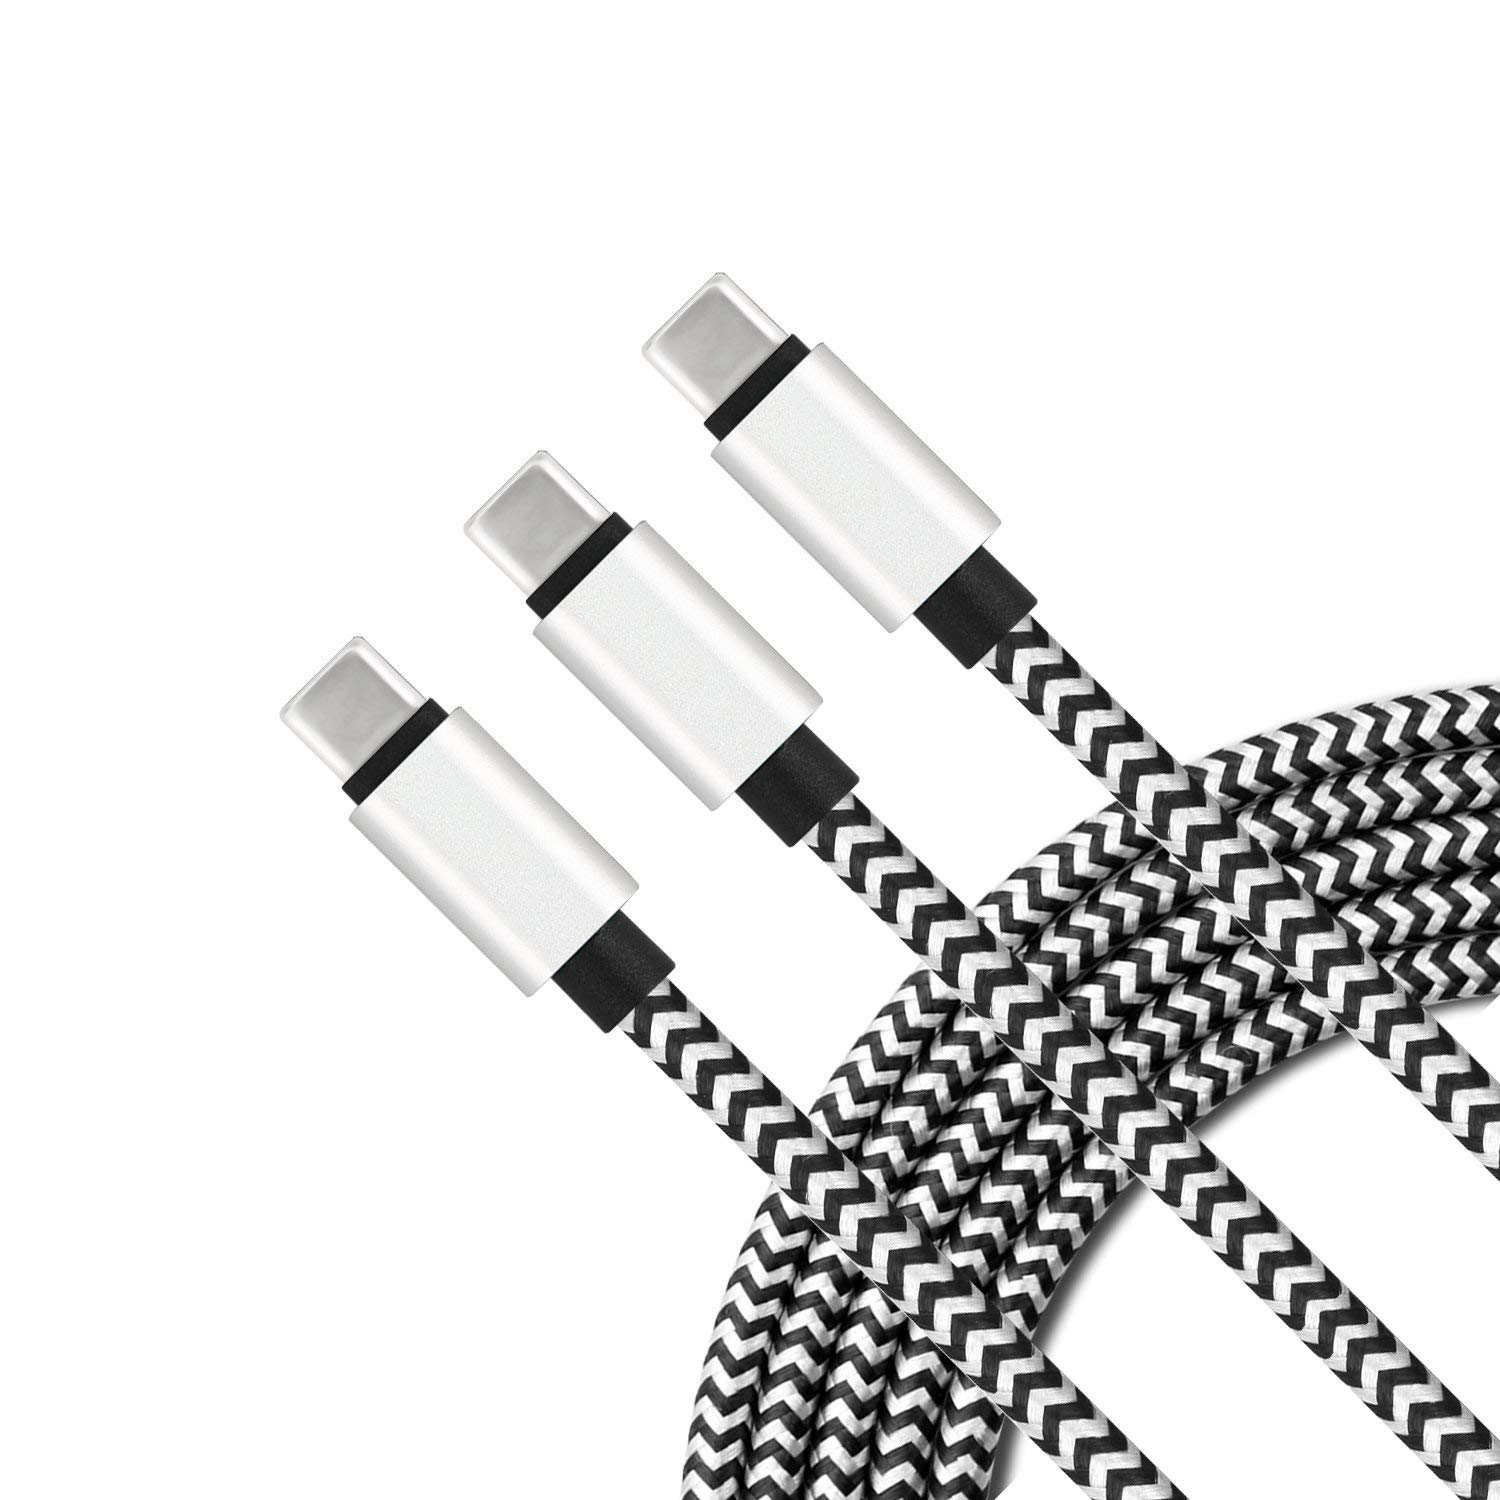 USB Type C Charger Cable [3-Pack, 6ft] Myckuu Fast Quick Charge USB-C Nylon Braided Cord for Samsung S9/S8 Plus, Galaxy Note 9/8, LG Stylo 4/G7 Thinq, ...